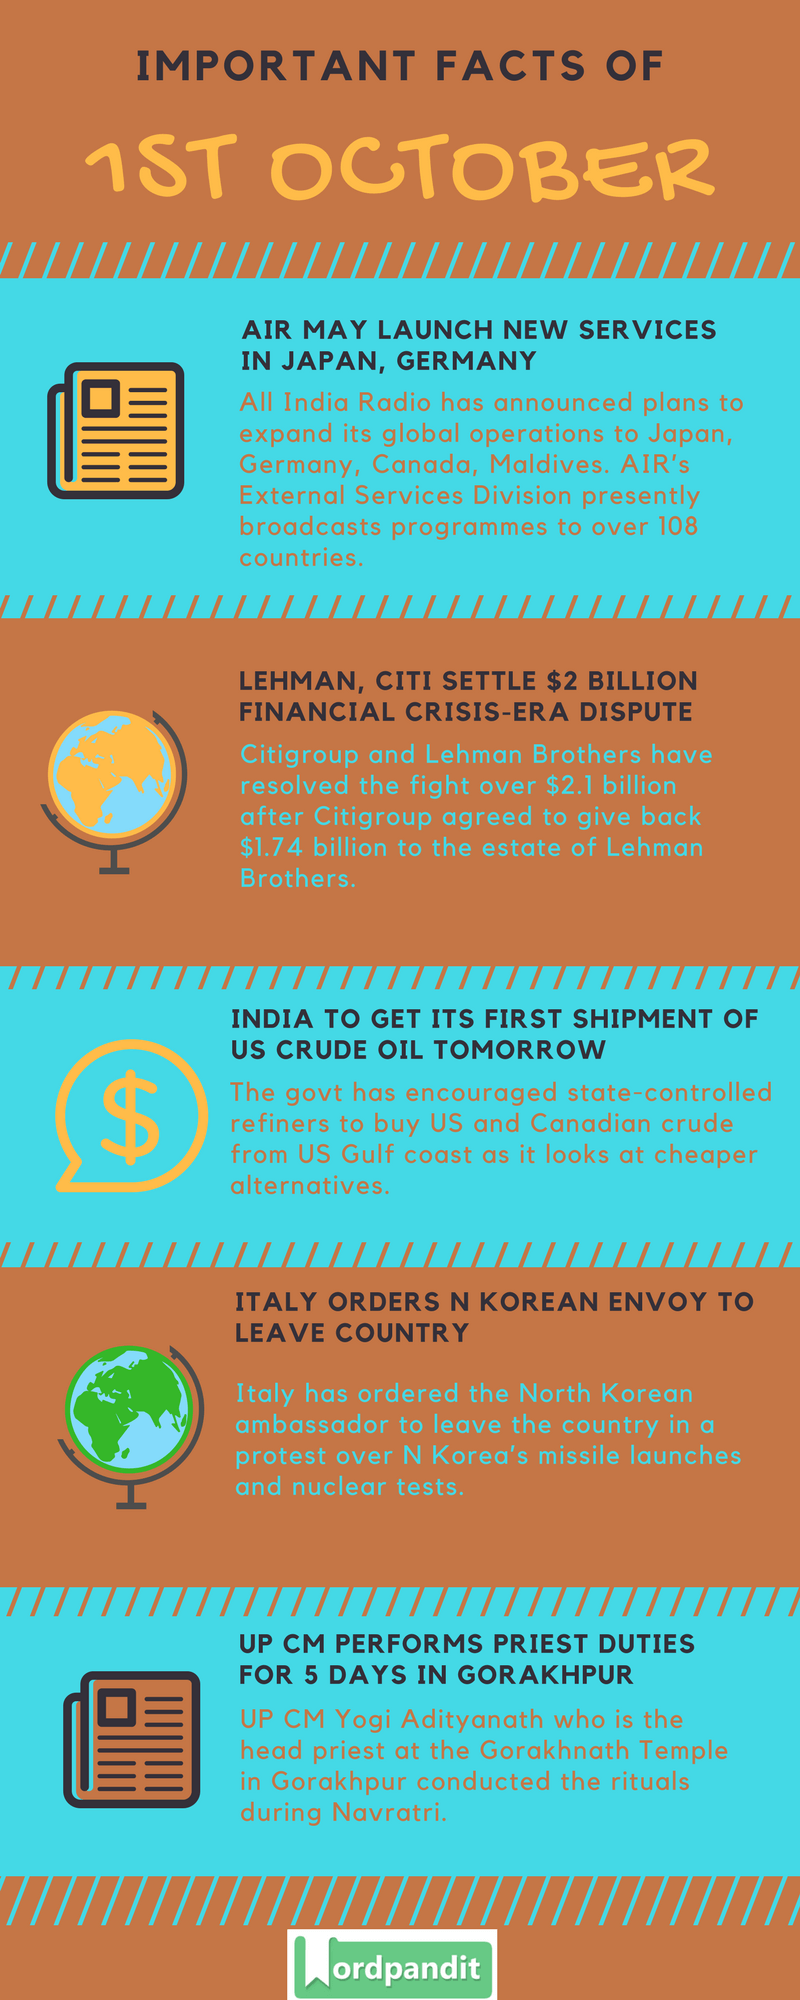 Daily-Current-Affairs-1-october-2017-Current-Affairs-Quiz-october-1-2017-Current-Affairs-Infographic